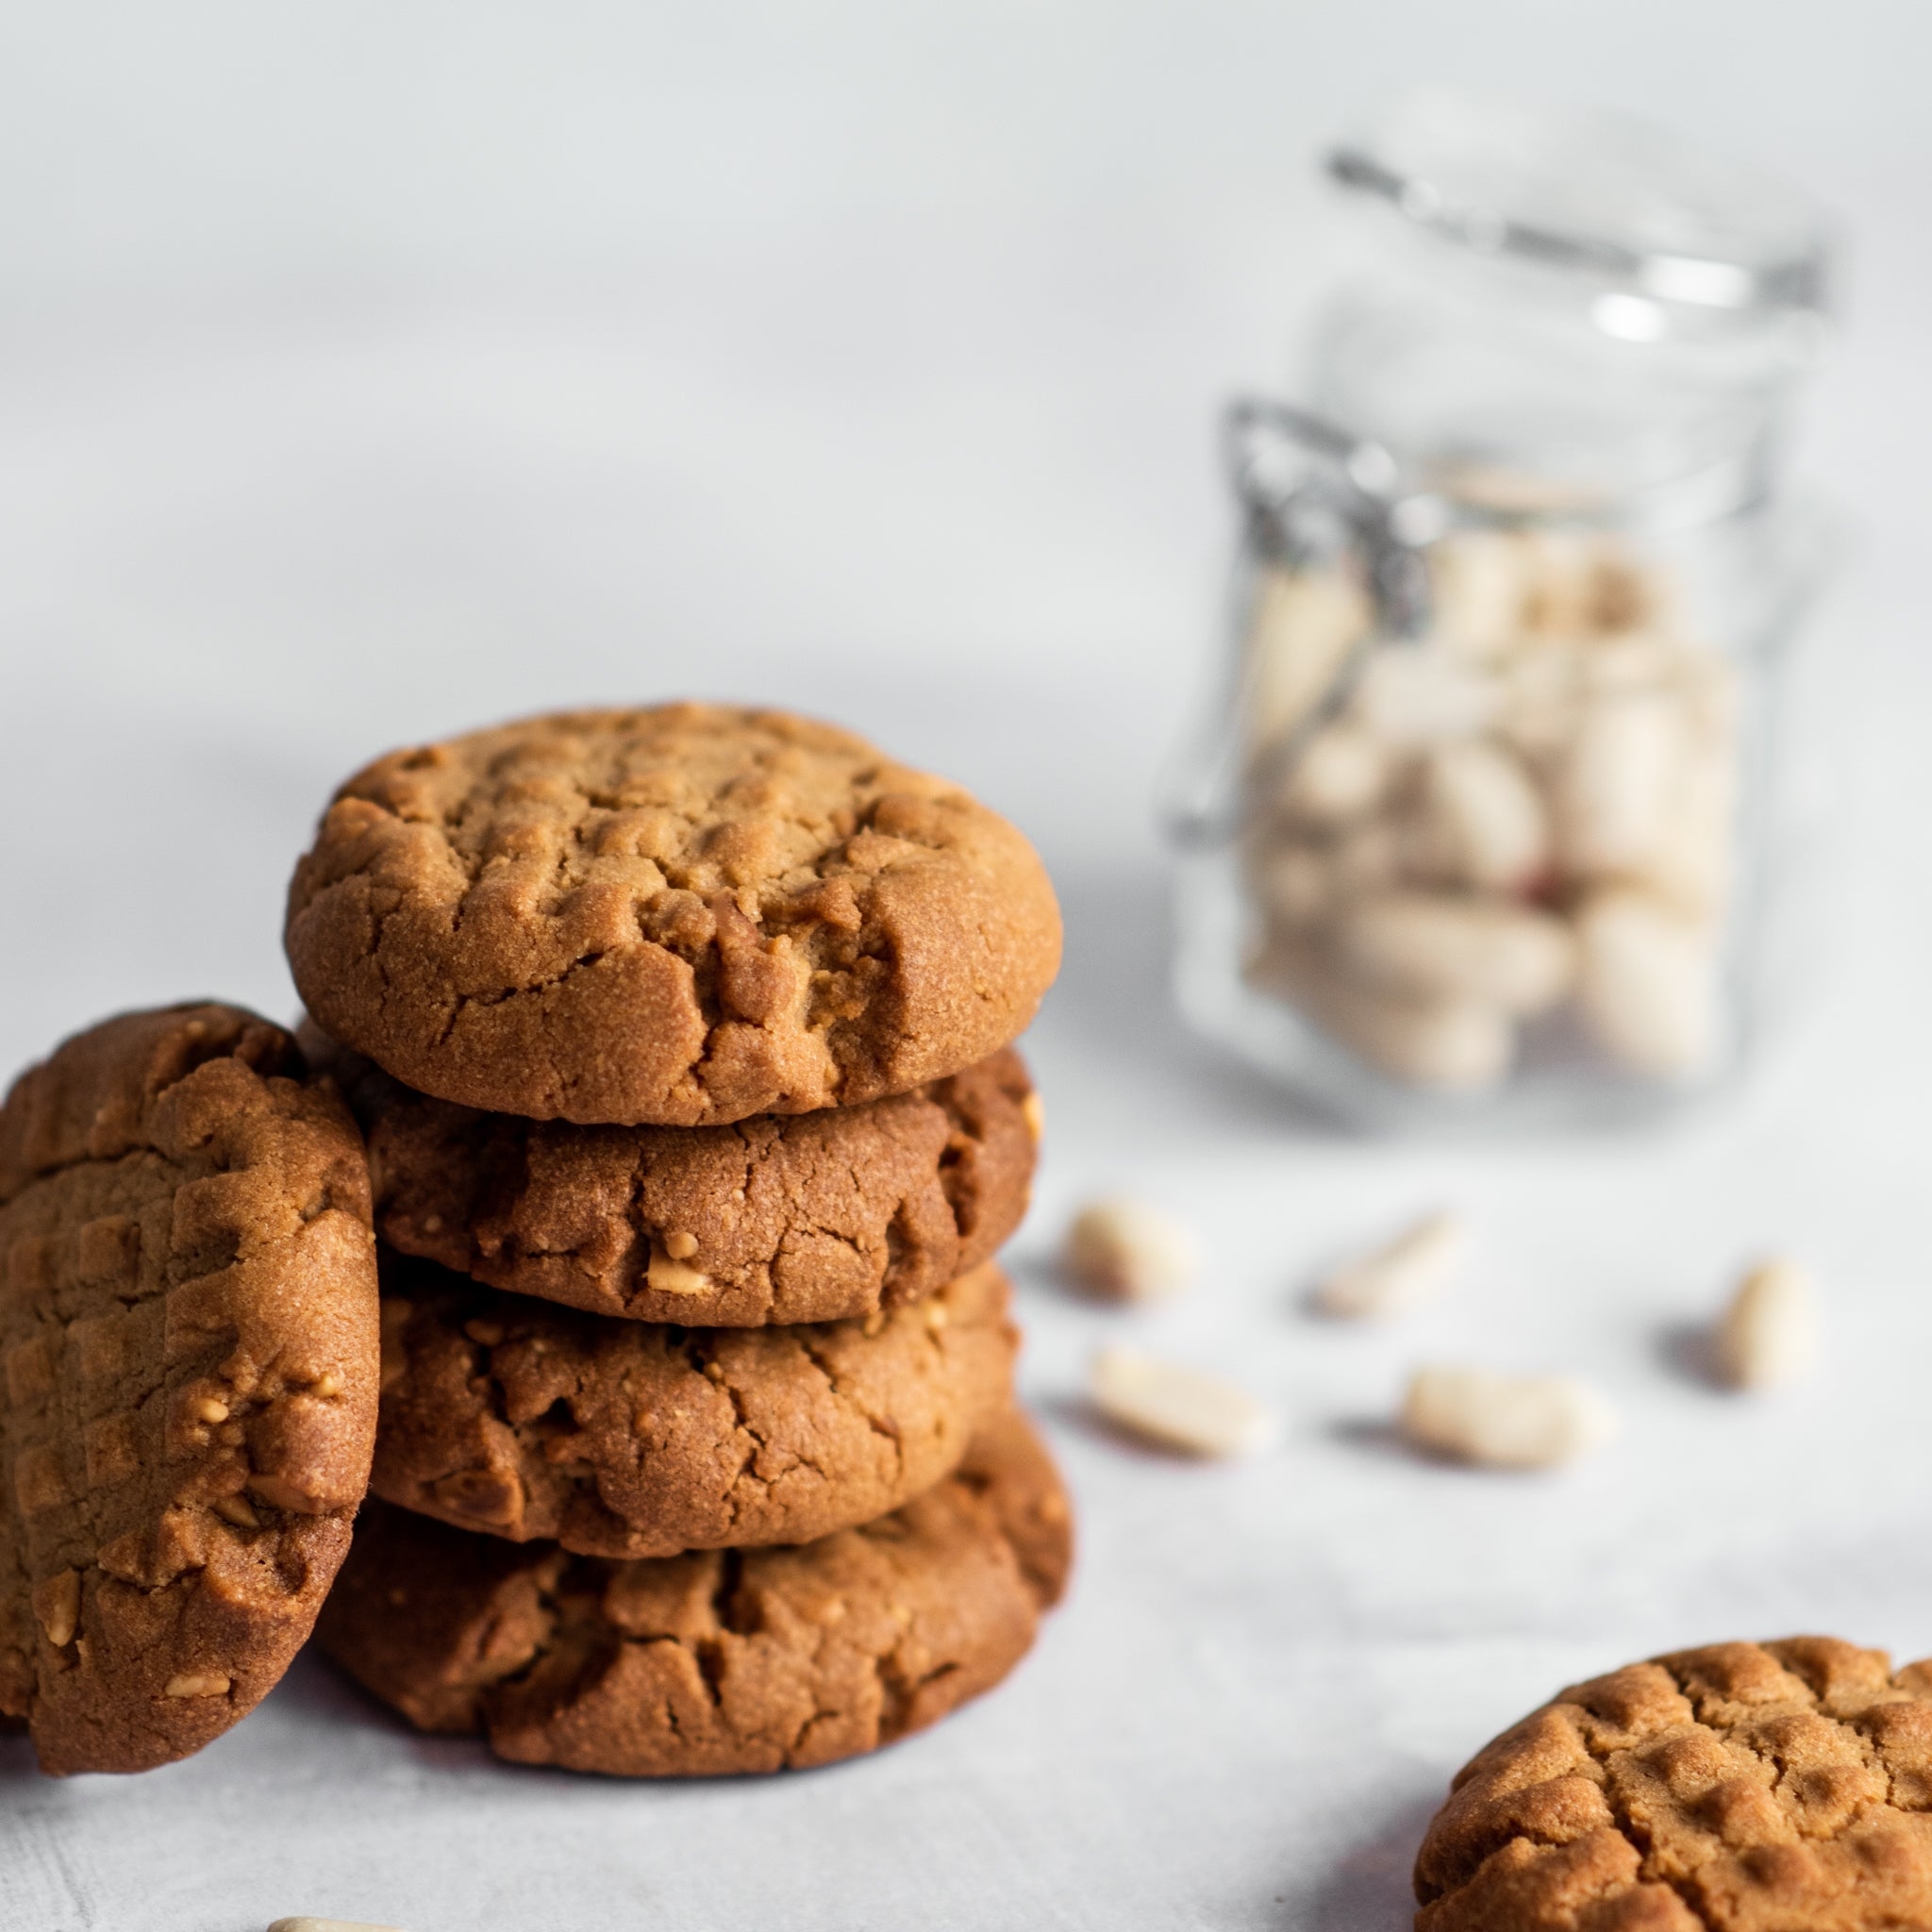 Crunchy-Peanut-Butter-Cookies-SQUARE-7.jpg